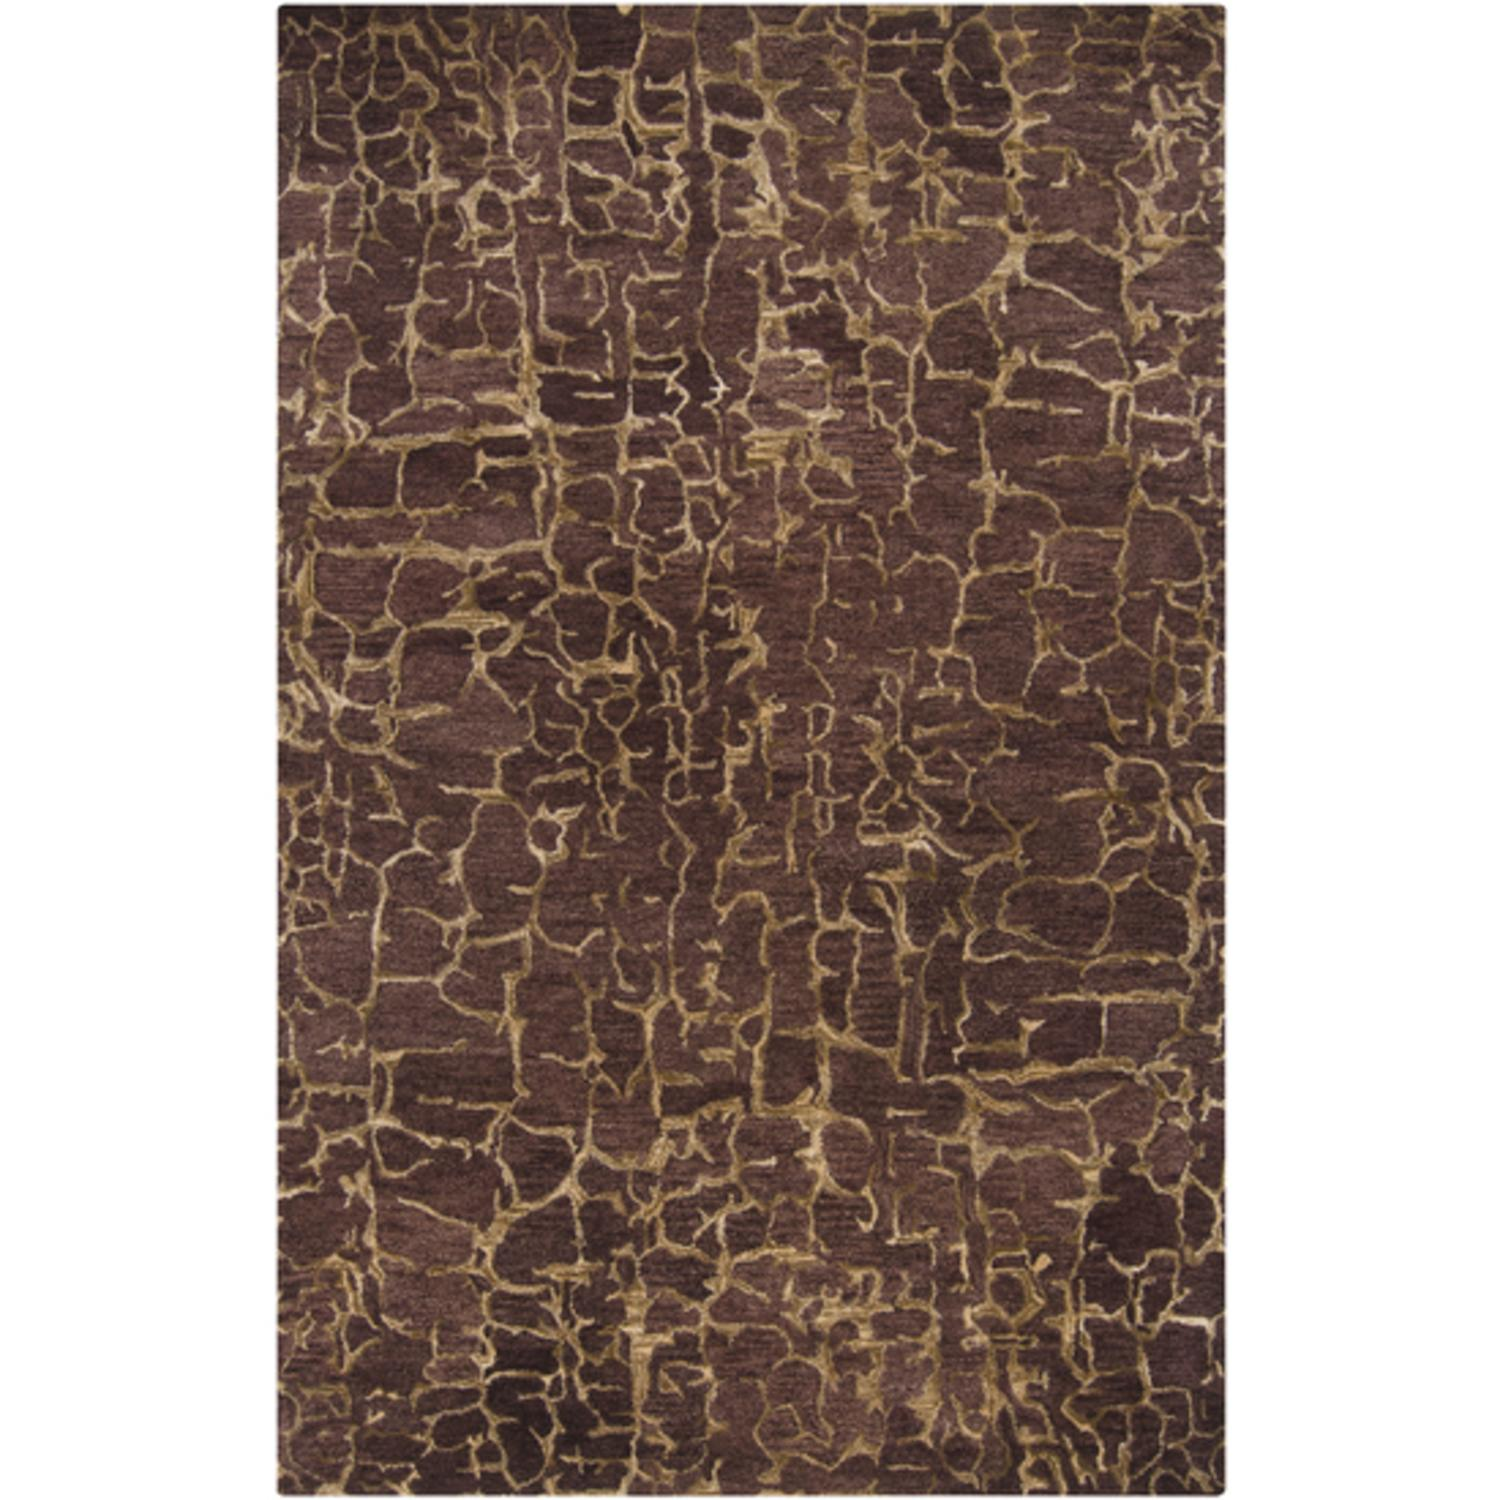 5' x 8' Cracked Pavement Parchment and Plum Wine Wool Area Throw Rug